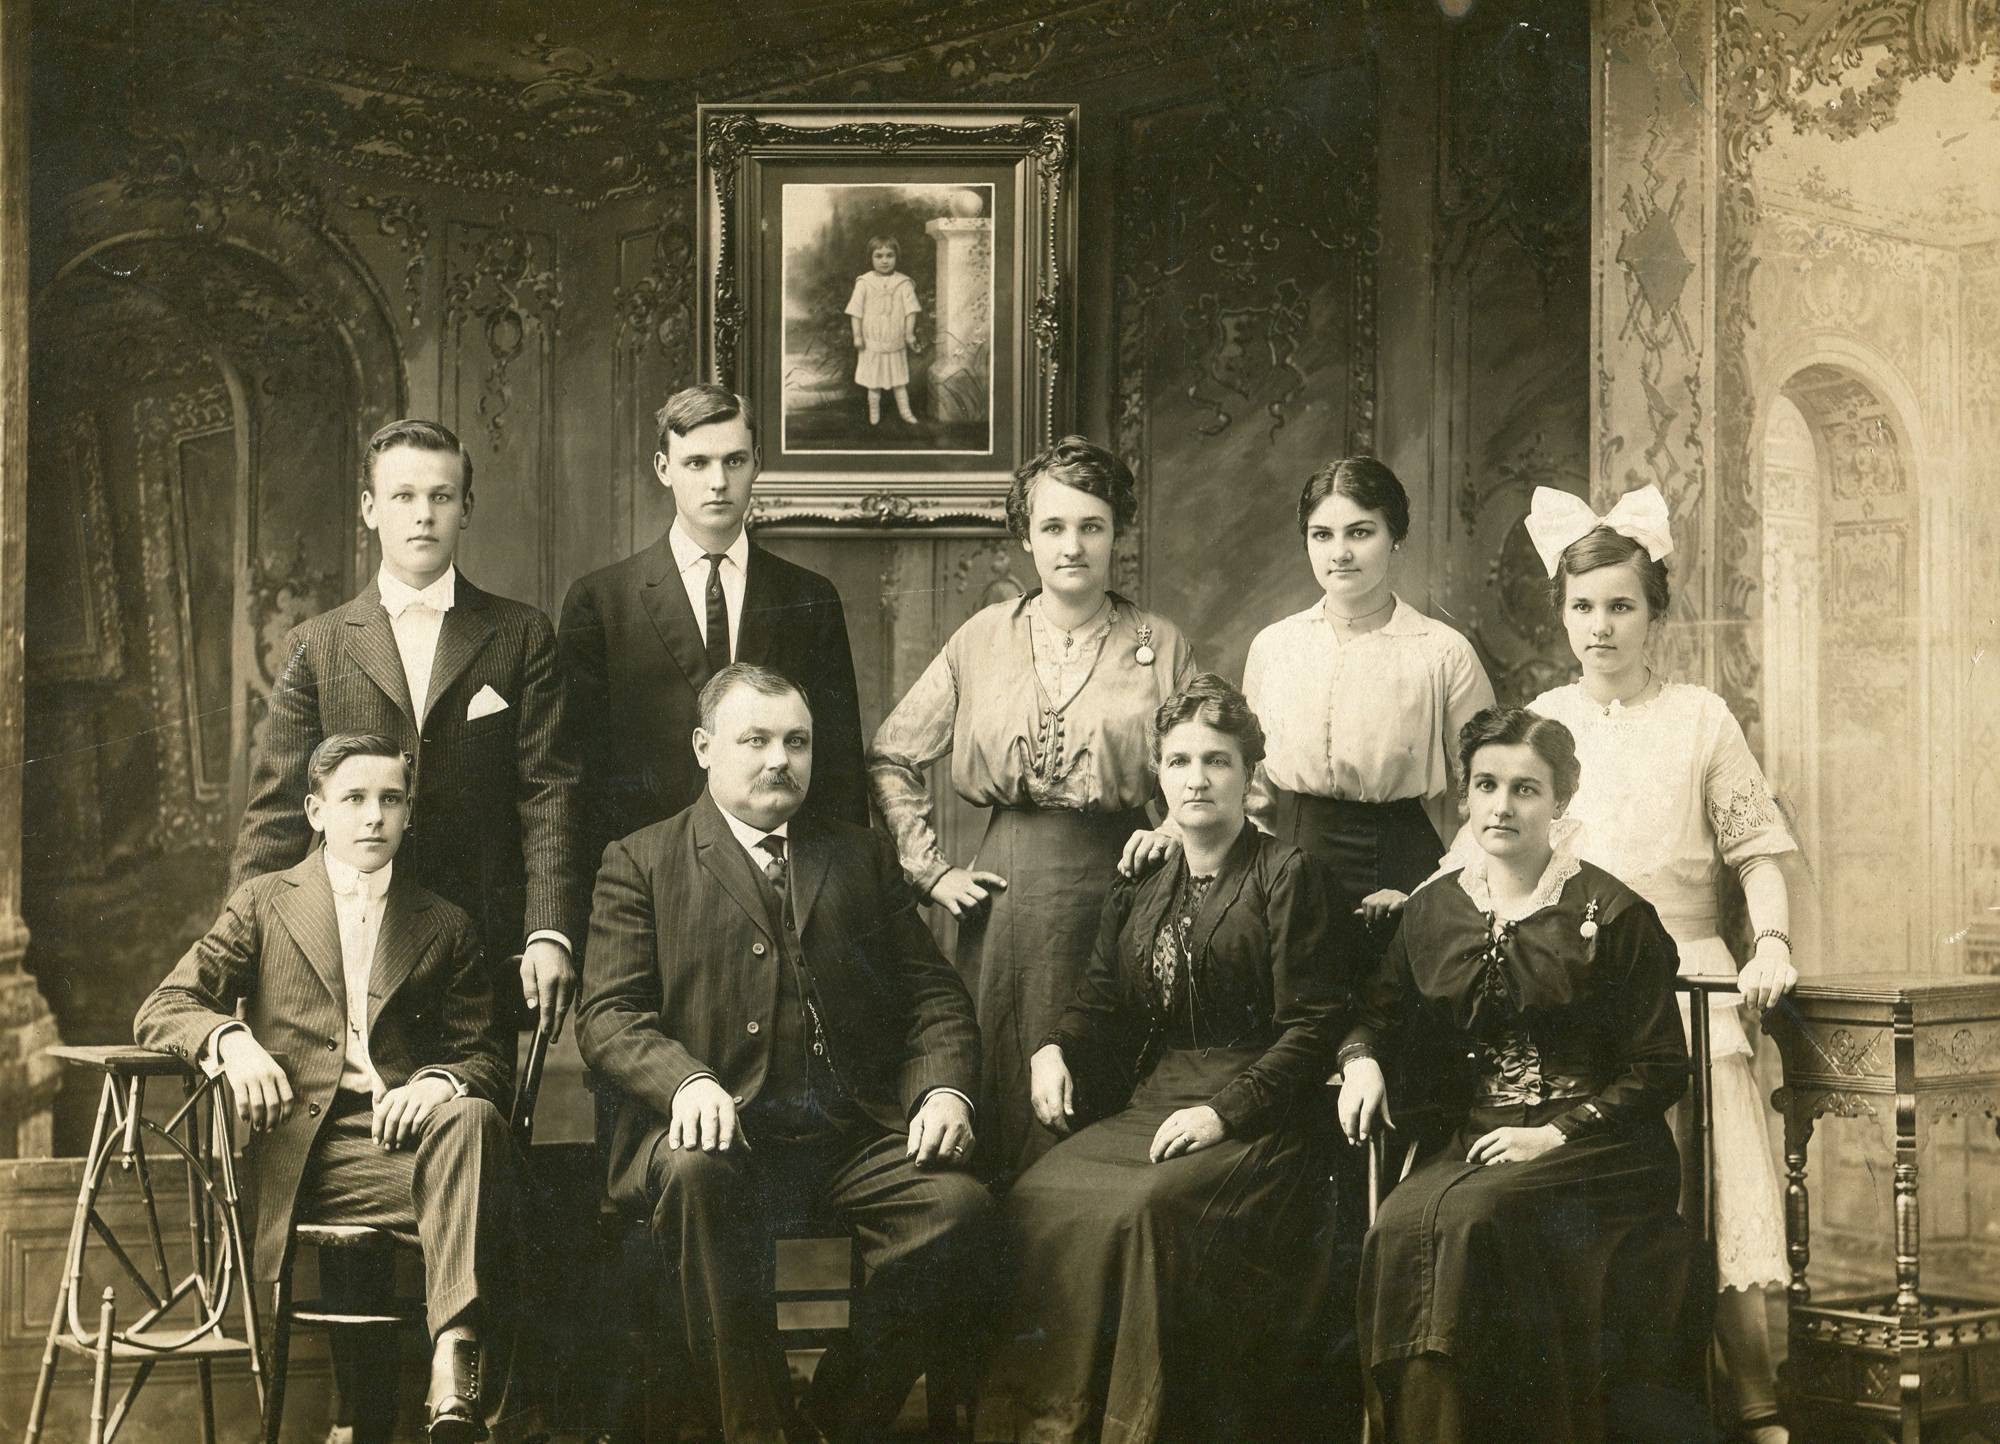 John and Christine Meyn had eight children, seven of whom are in this photo.